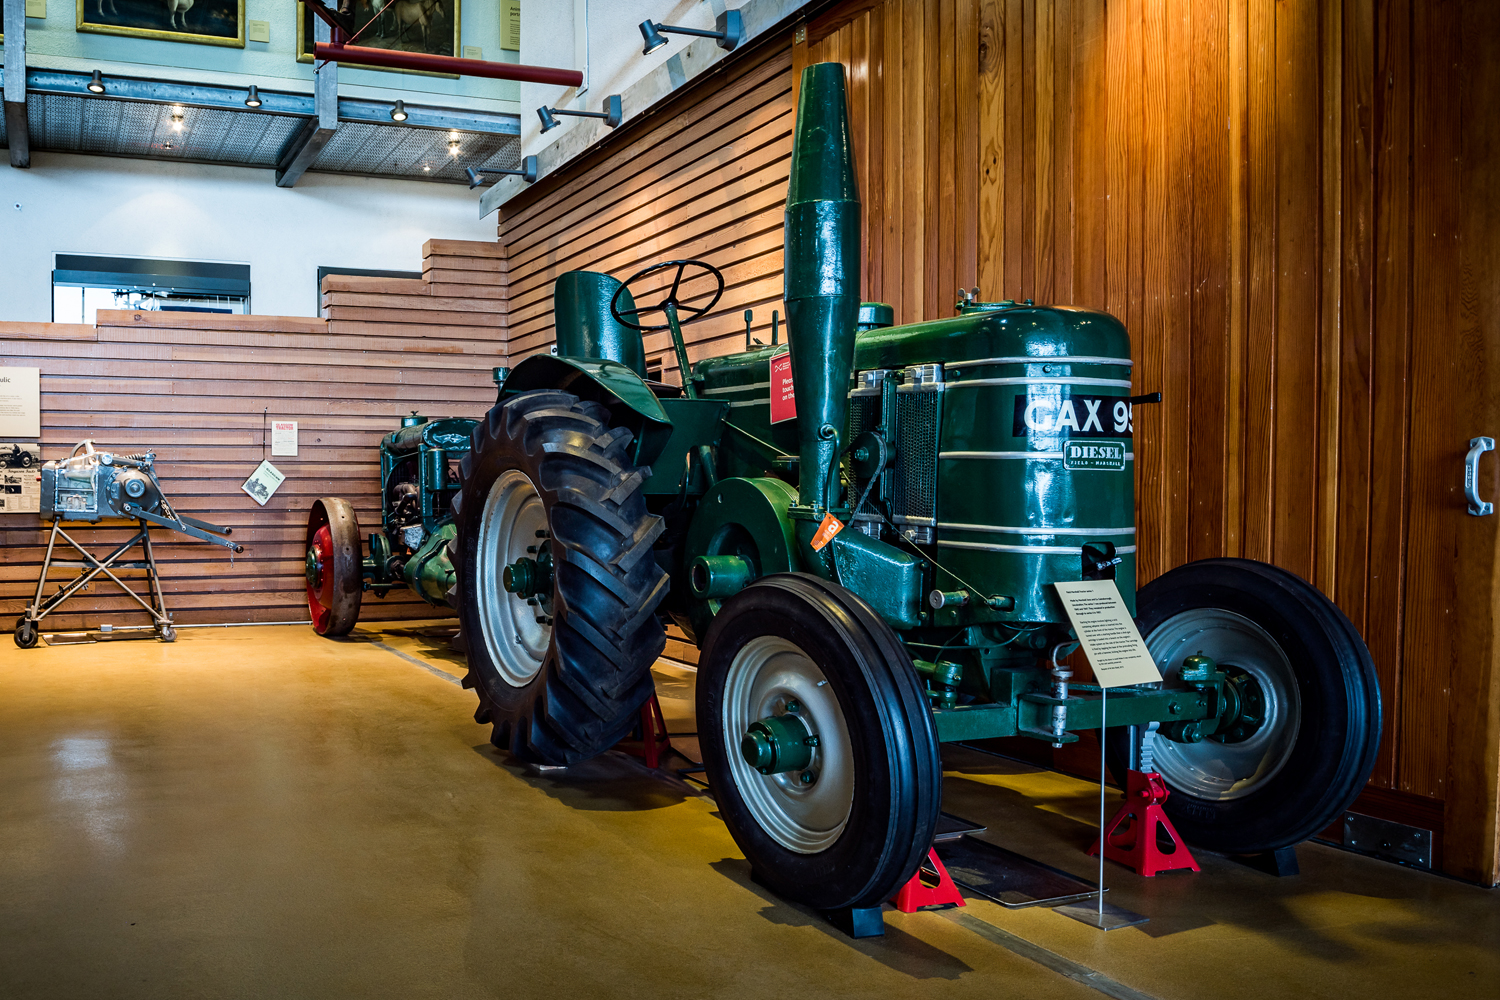 A tractor in a museum display